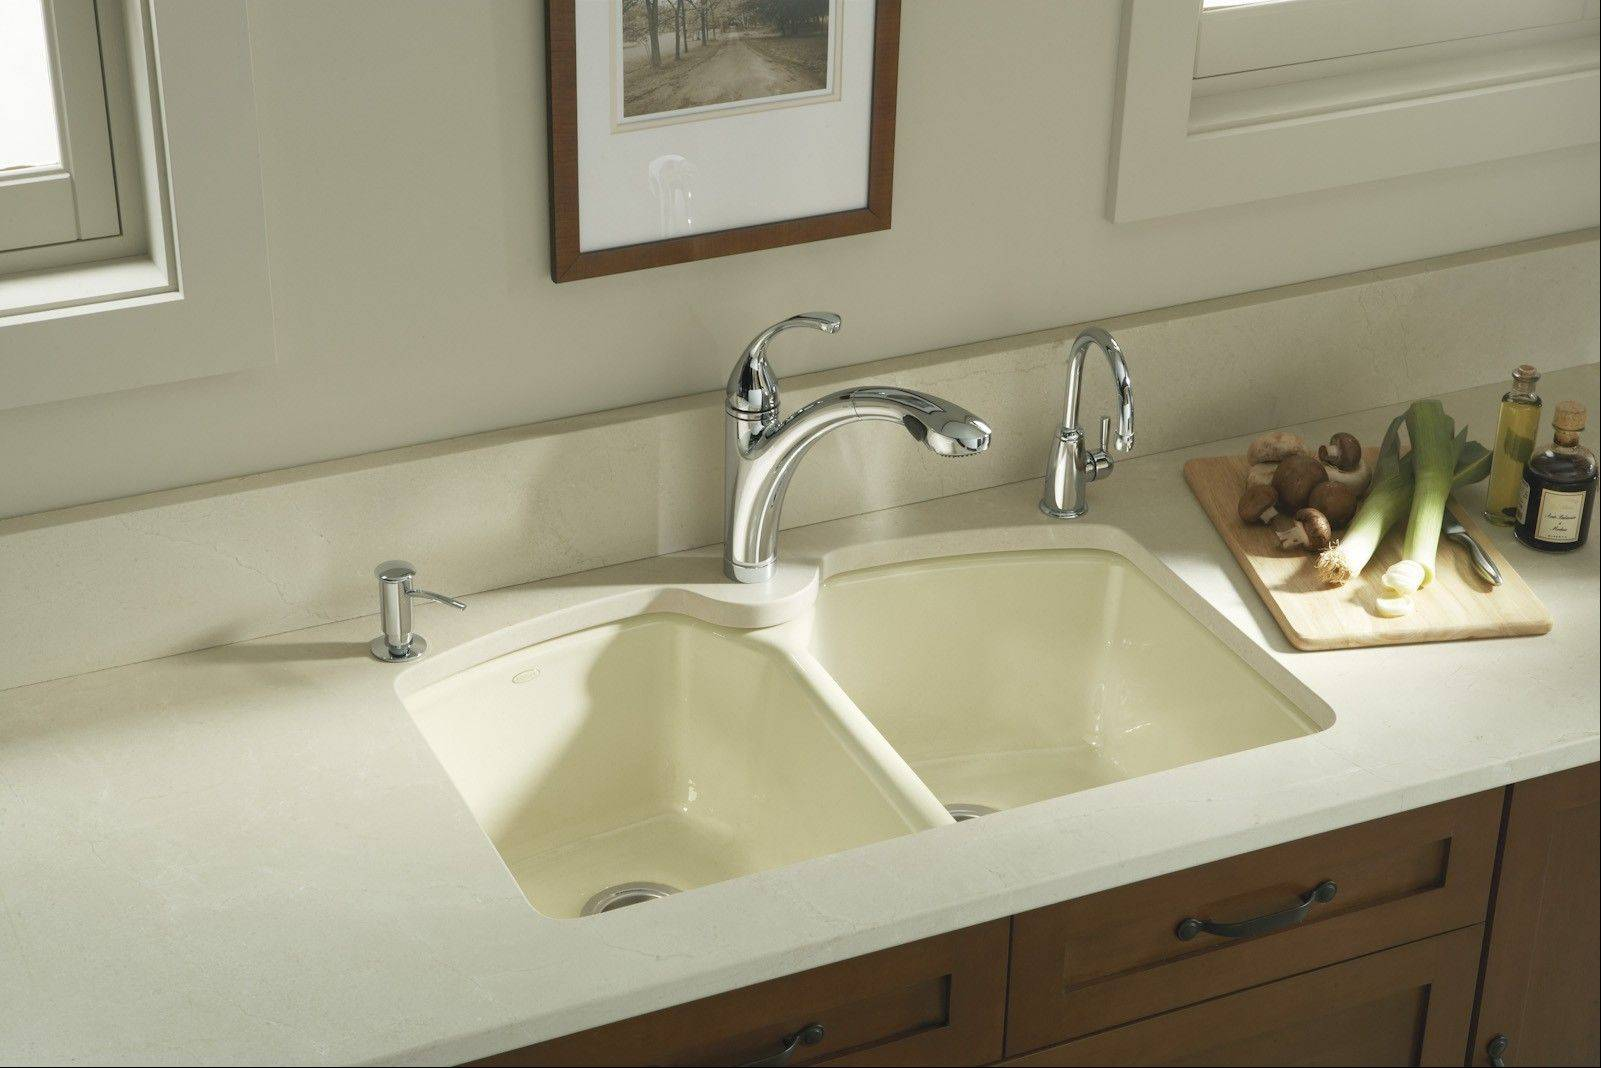 A beverage faucet, at right, has a replaceable cartridge filter under the sink. It provides quality drinking water, which can both save you money and help the environment.